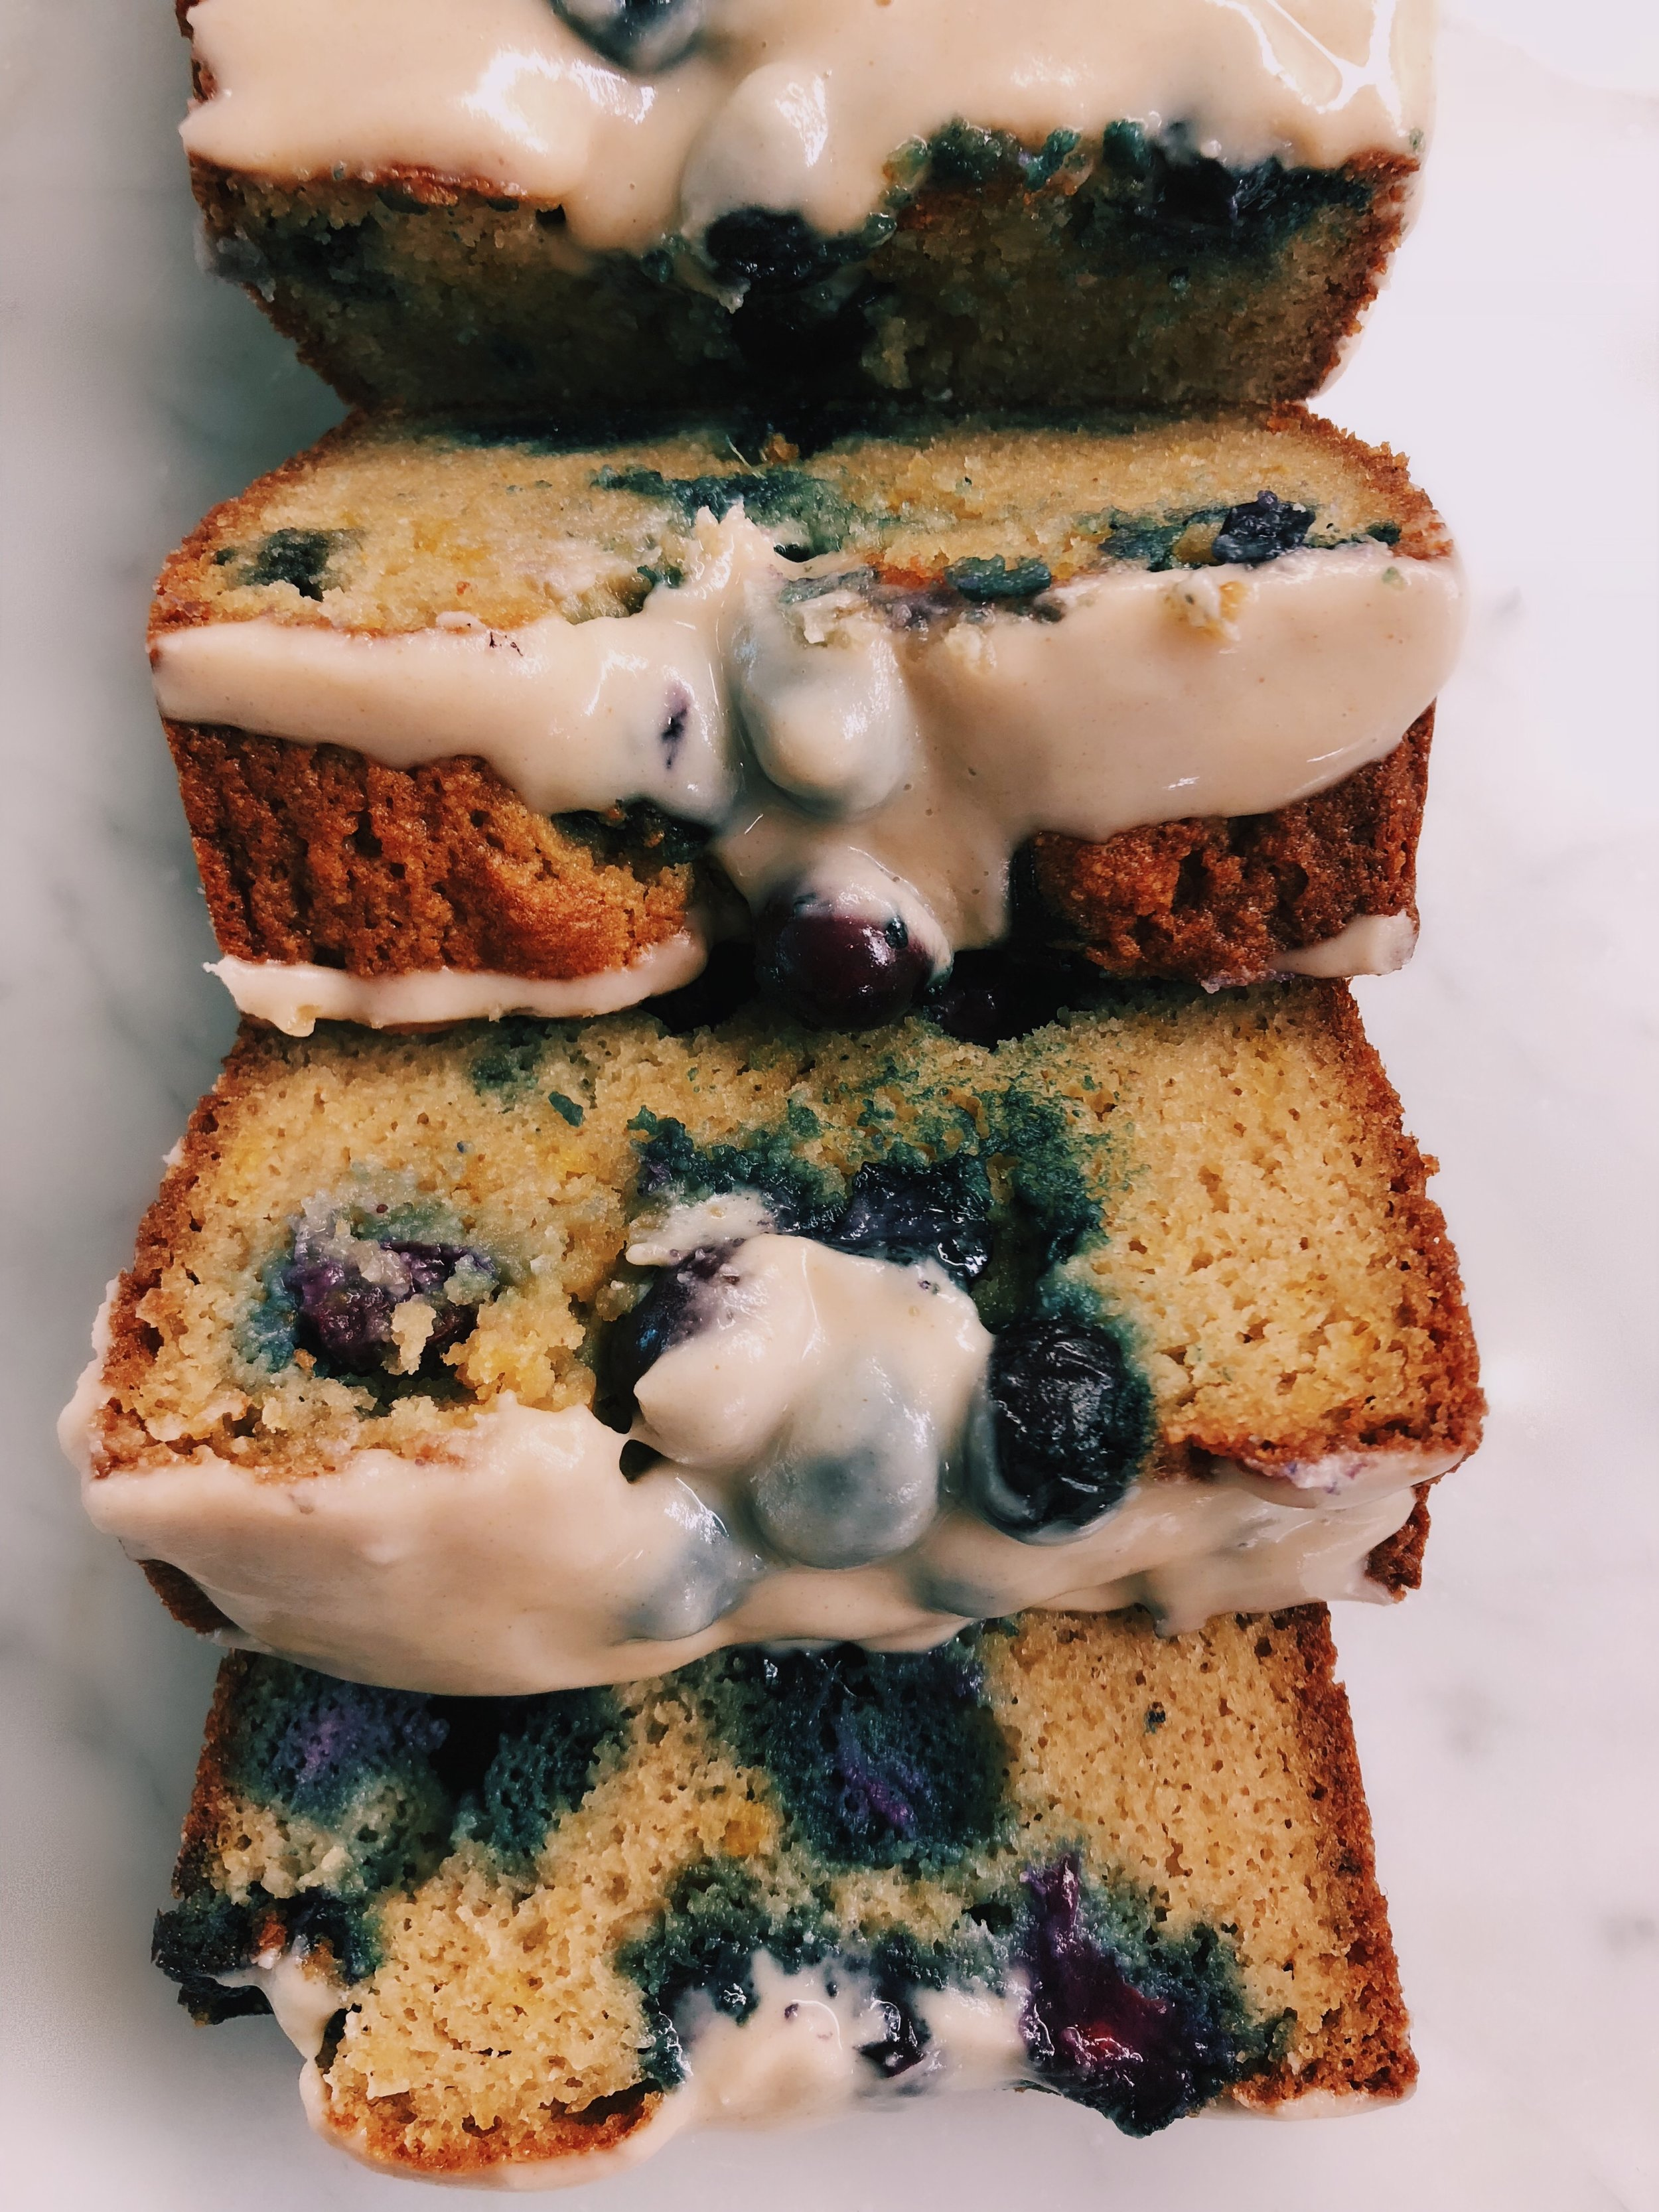 PALEO LEMON BLUEBERRY POUND CAKE - INGREDIENTS1 1/3 cup blanched almond flour (make sure to use FINE almond flour)1/3 cup coconut flour2 tb arrowroot powder1 1/2 tsp baking soda1 tsp cinnamon1/2 tsp salt3 eggsjuice from 2 lemonszest from the same 2 lemons!1/3 cup maple syrup1 cup fresh blueberriesTHE GLAZE:3 tb melted coconut butter